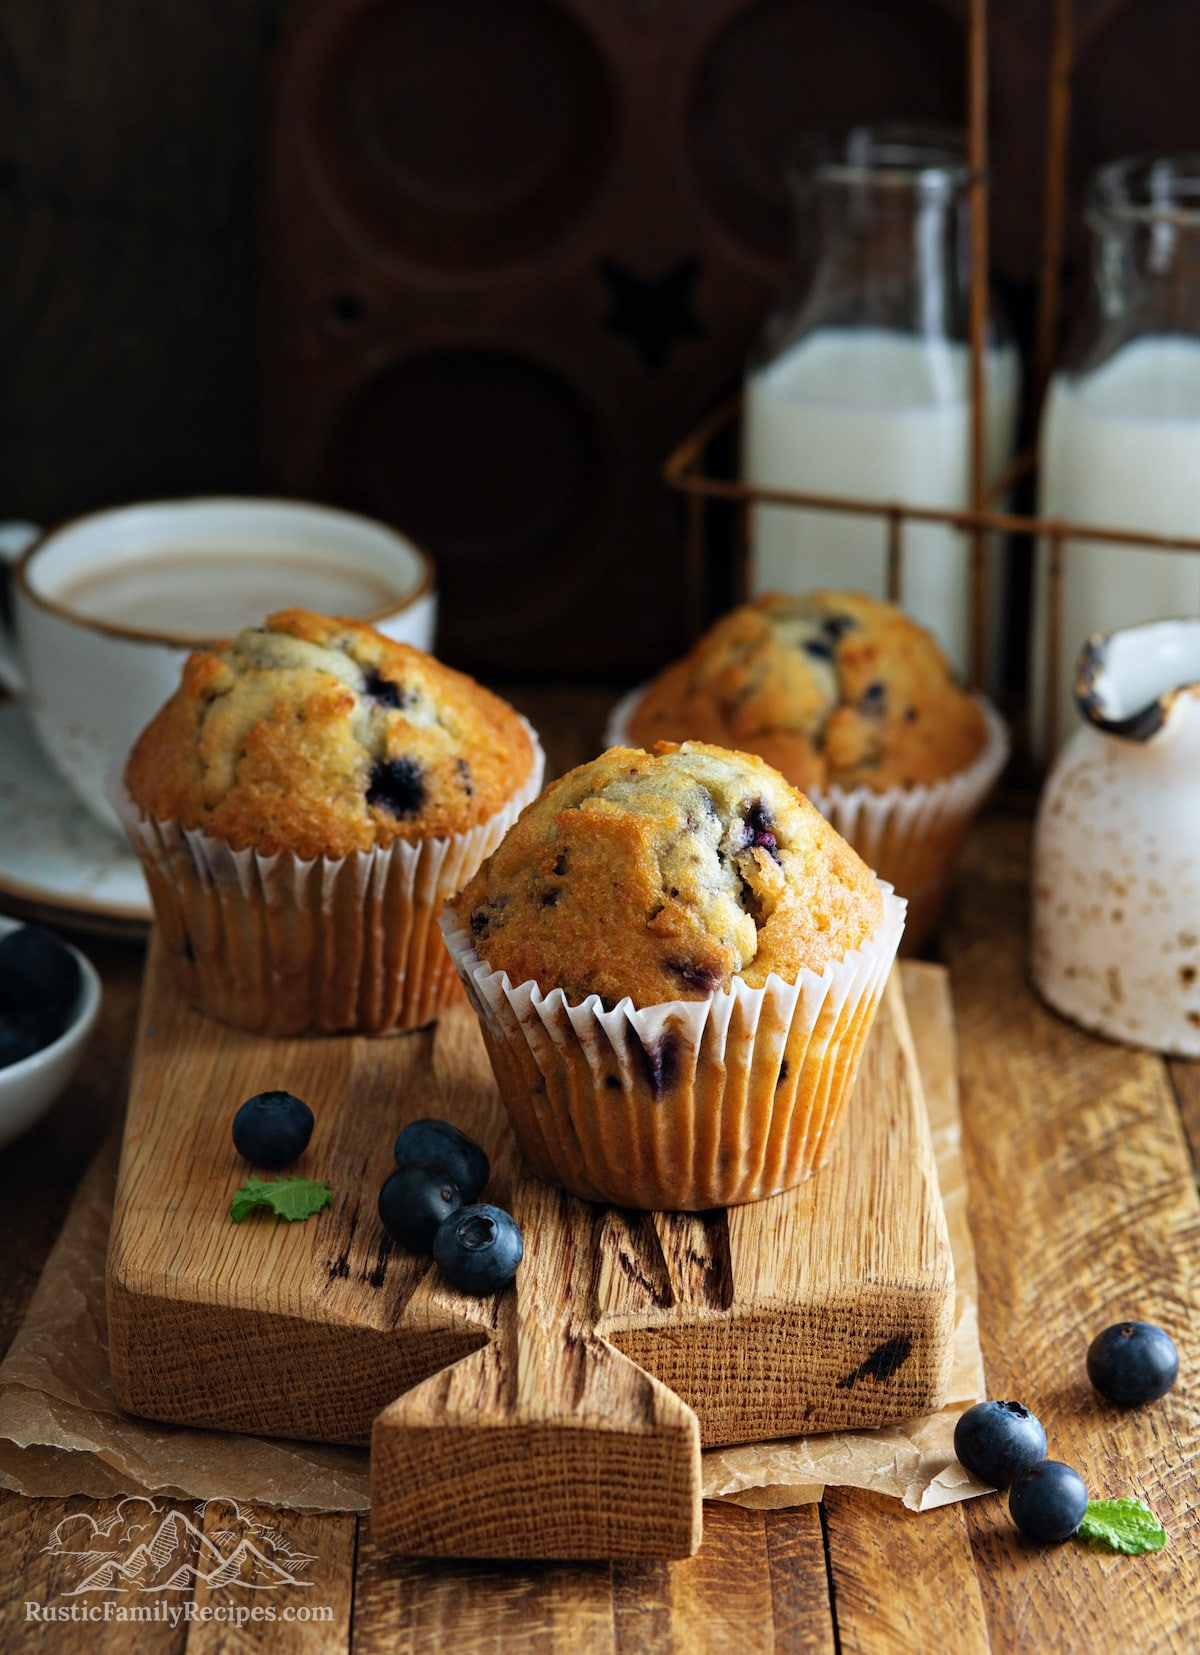 Three sourdough blueberry muffins on a wooden board with milk jugs.